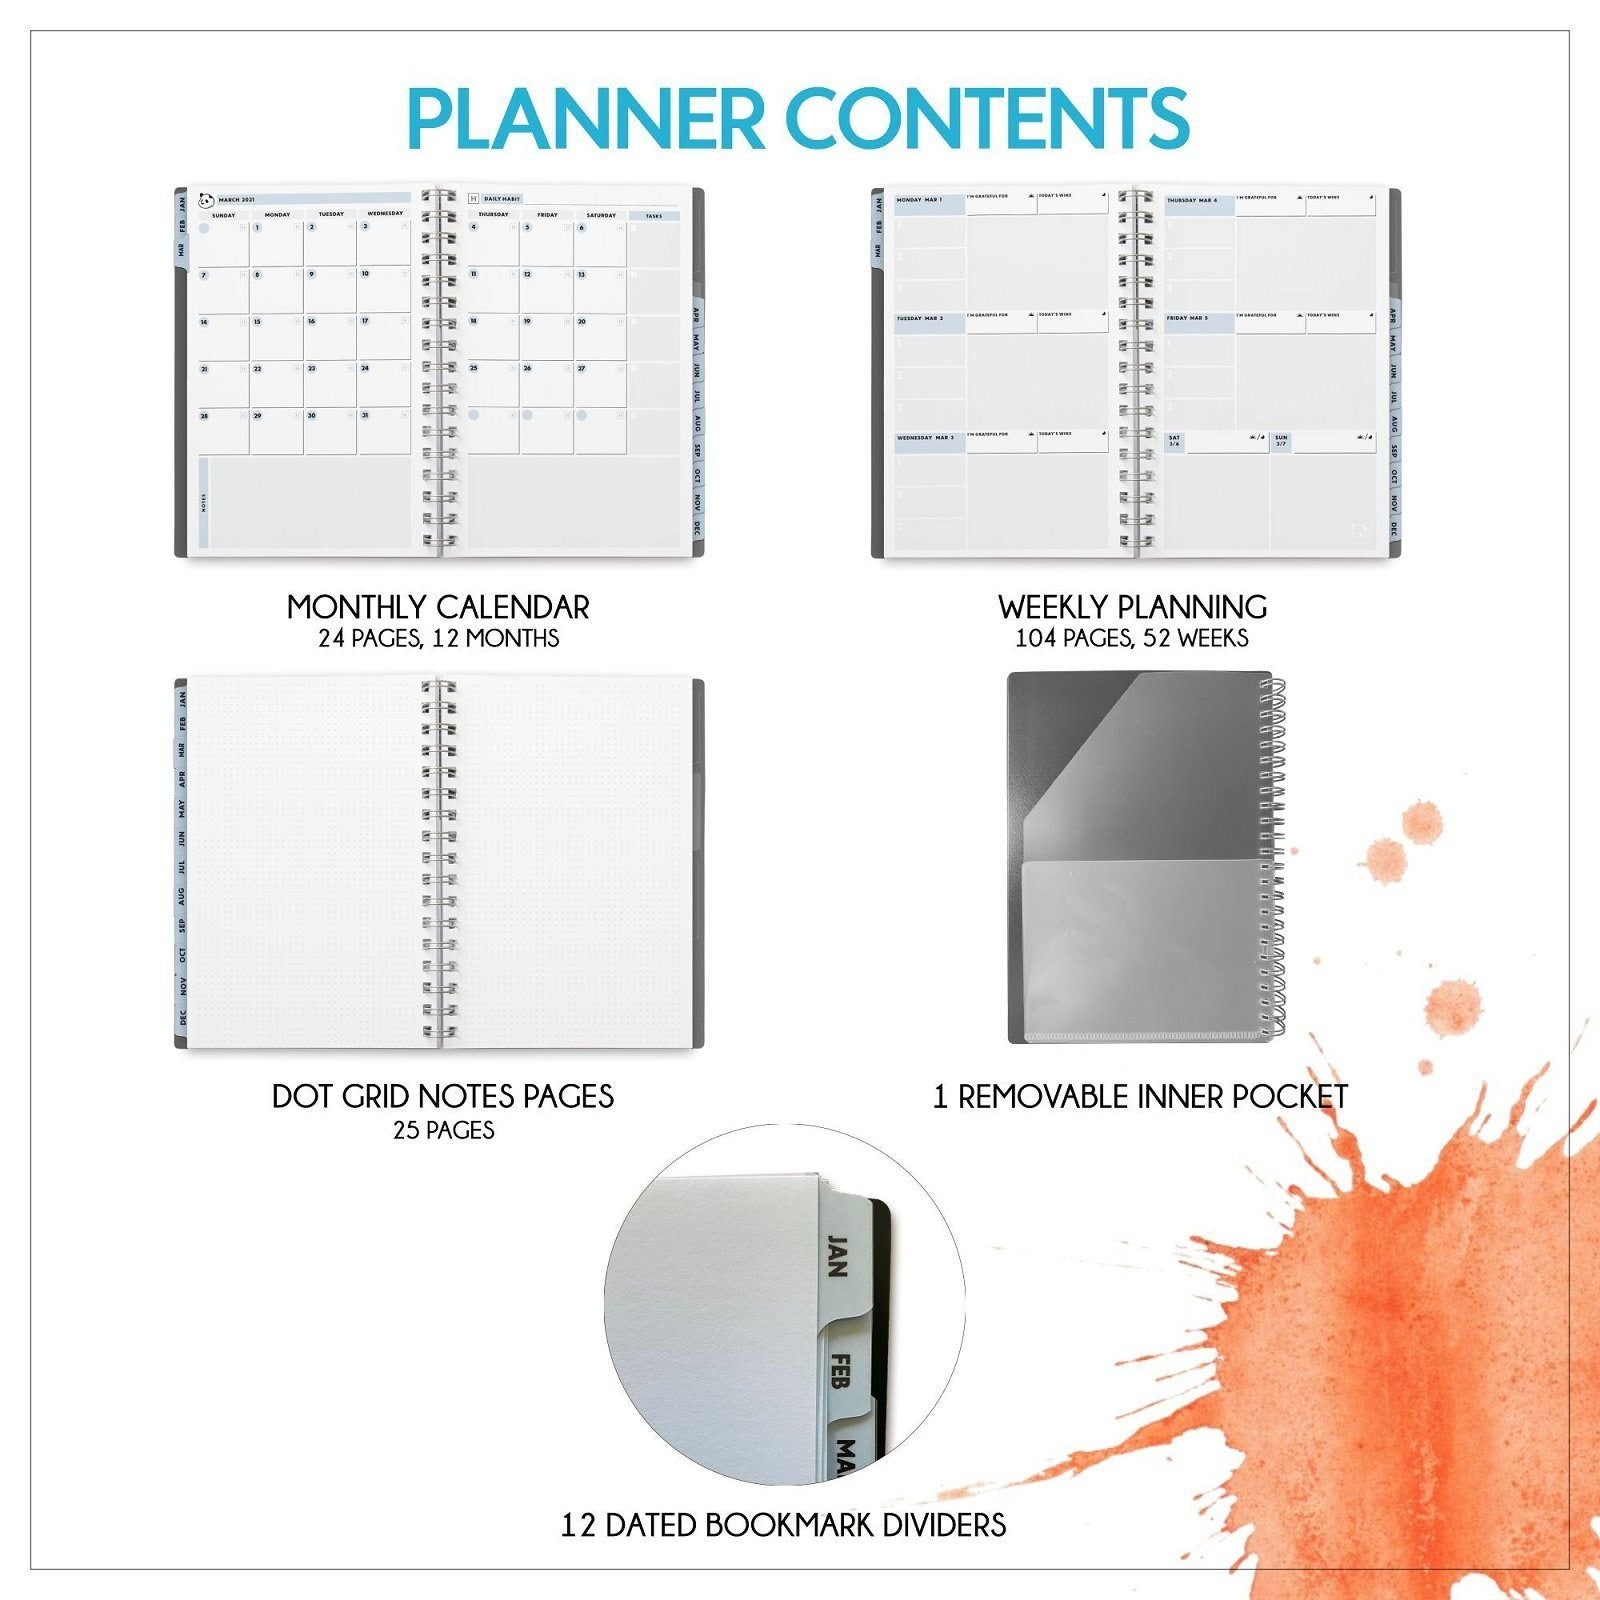 "2021 Weekly Planner 2.0 by Panda Planner (Dated - Gray) - 1 Year Monthly Calendar and Weekly Organizer Notebook - Spiral Bound Wire Binding 12 Month Weekly Planner - 8.25"" x 5.75"" Panda Planner"